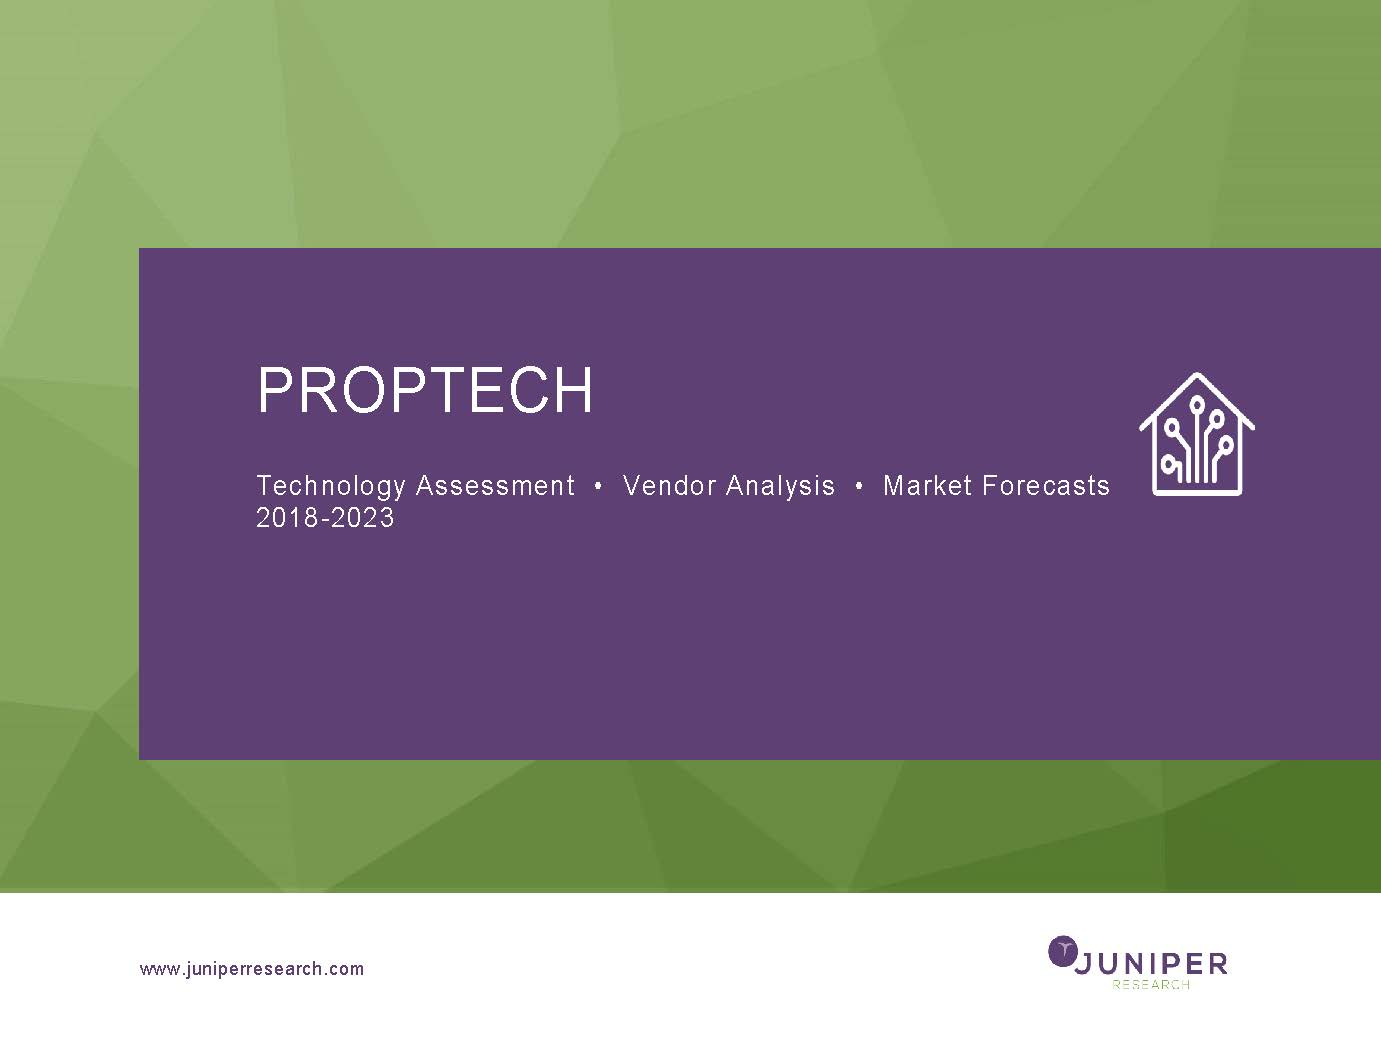 Proptech: Technology Assessment, Vendor Analysis & Market Forecasts 2018-2023 Full Research Suite